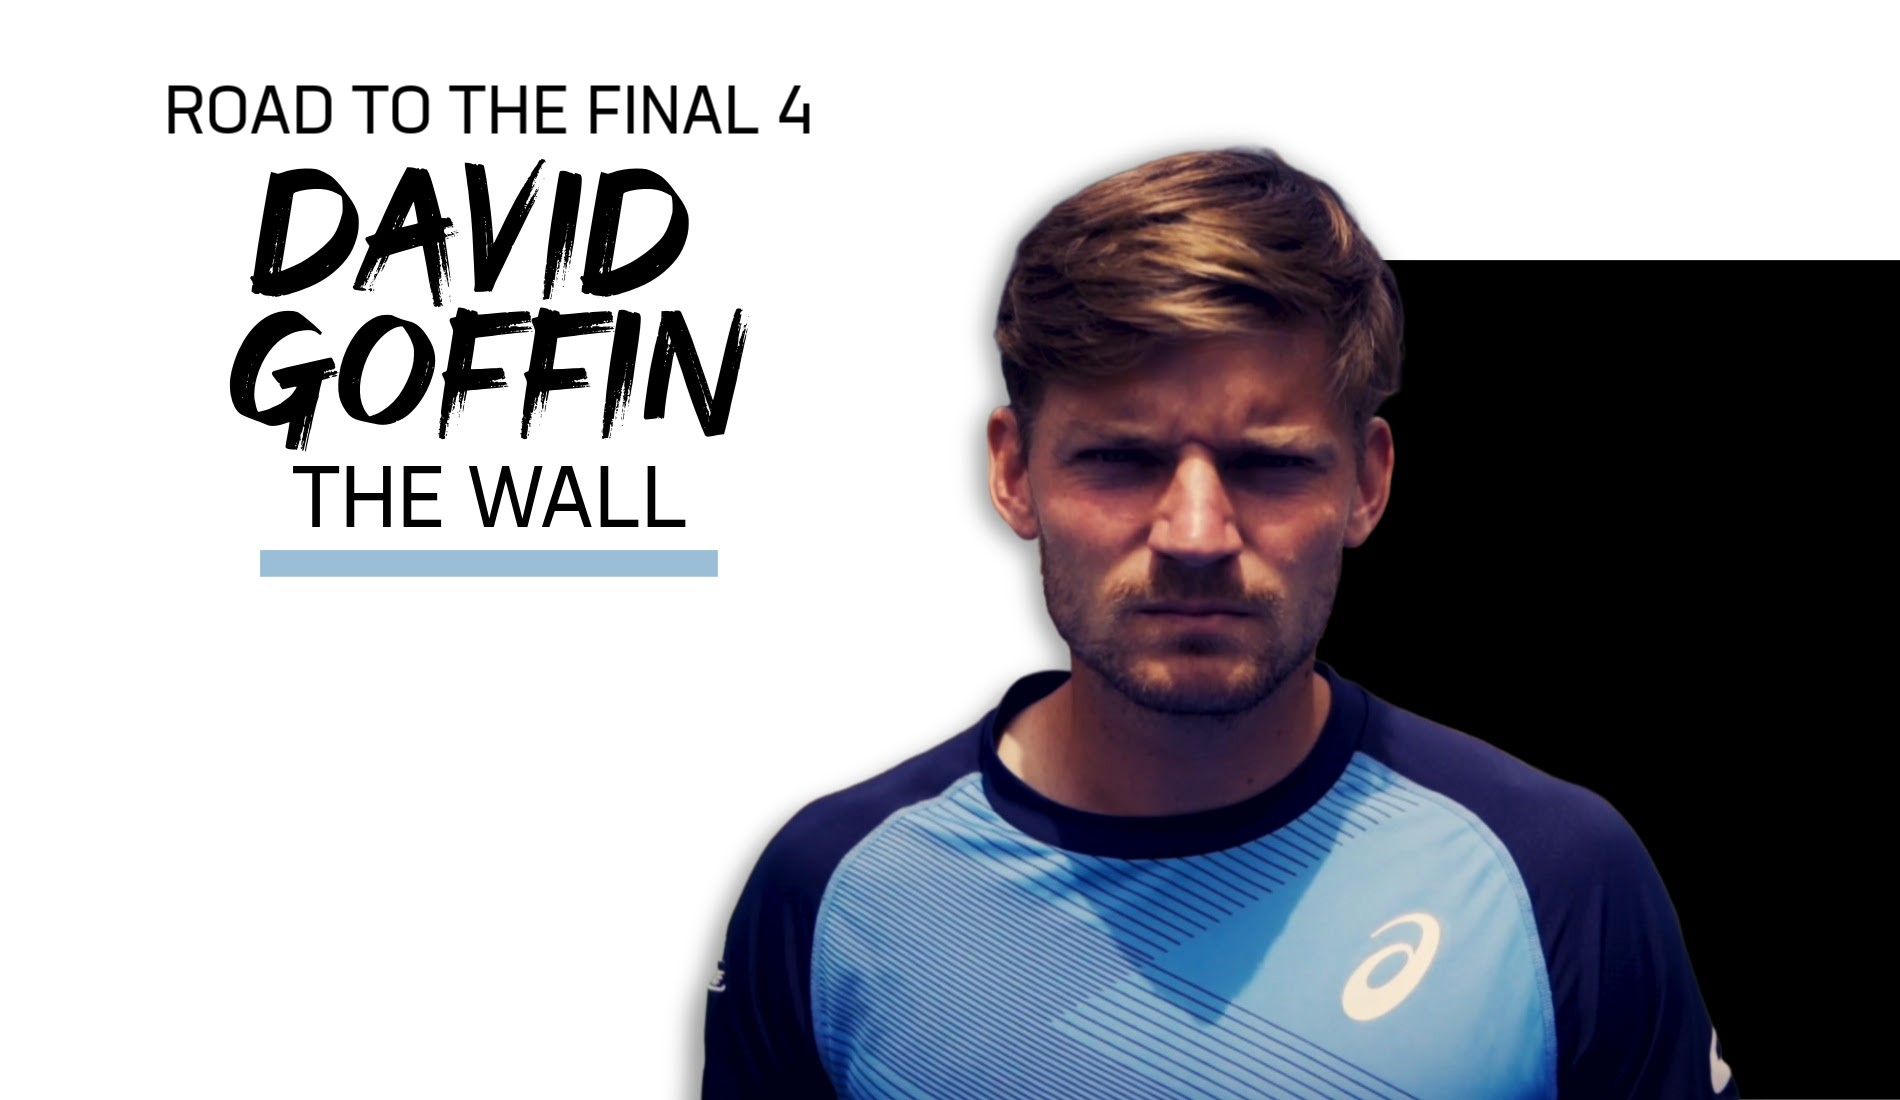 UTS1 - Road to the Final 4: David Goffin